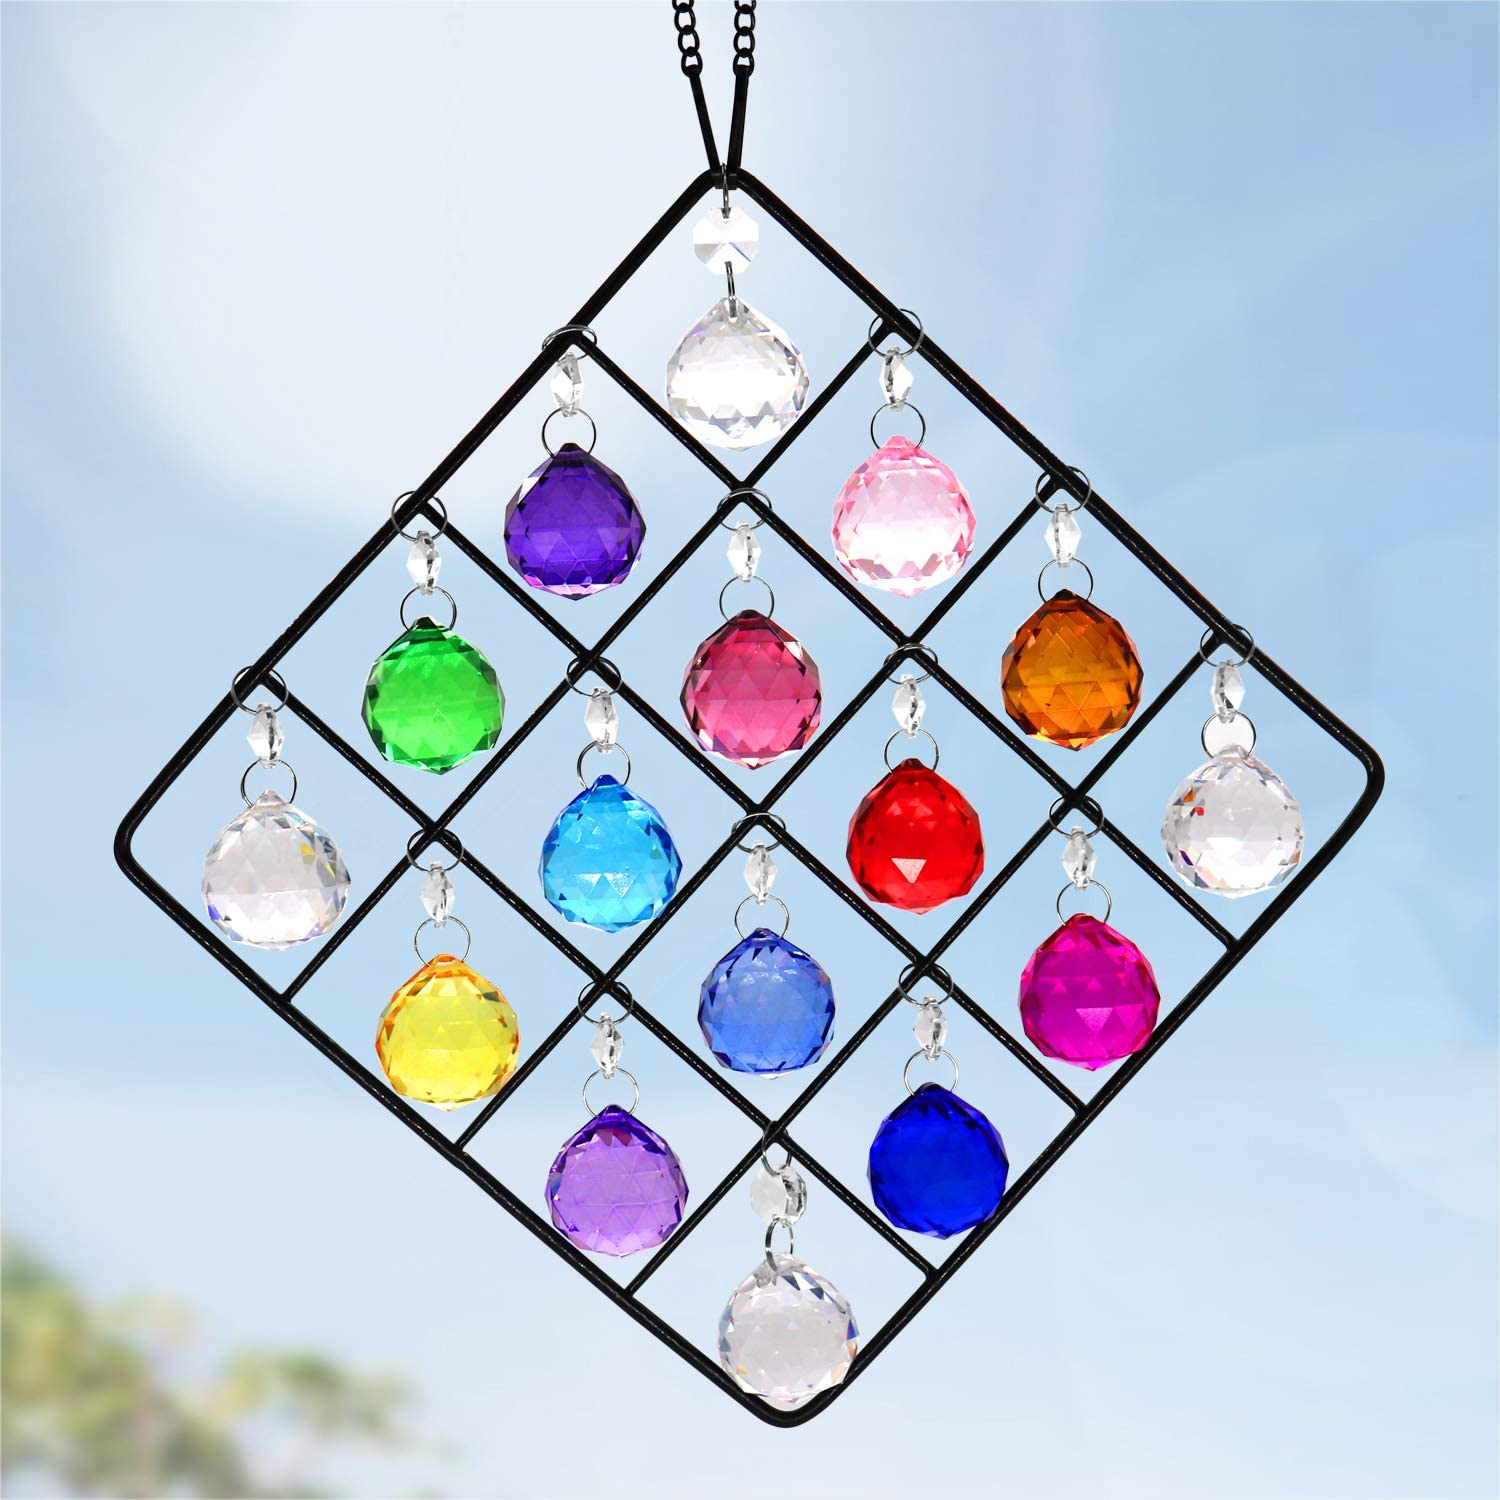 16 -Pack Clear Glass Crystal Ball Prisms Window Rainbow Maker Metal Crystal Garden Pendant Crystal Ornament Sphere Faceted Gazing Ball Suncatcher for Window, Garden, Home Decoration((Colorful)